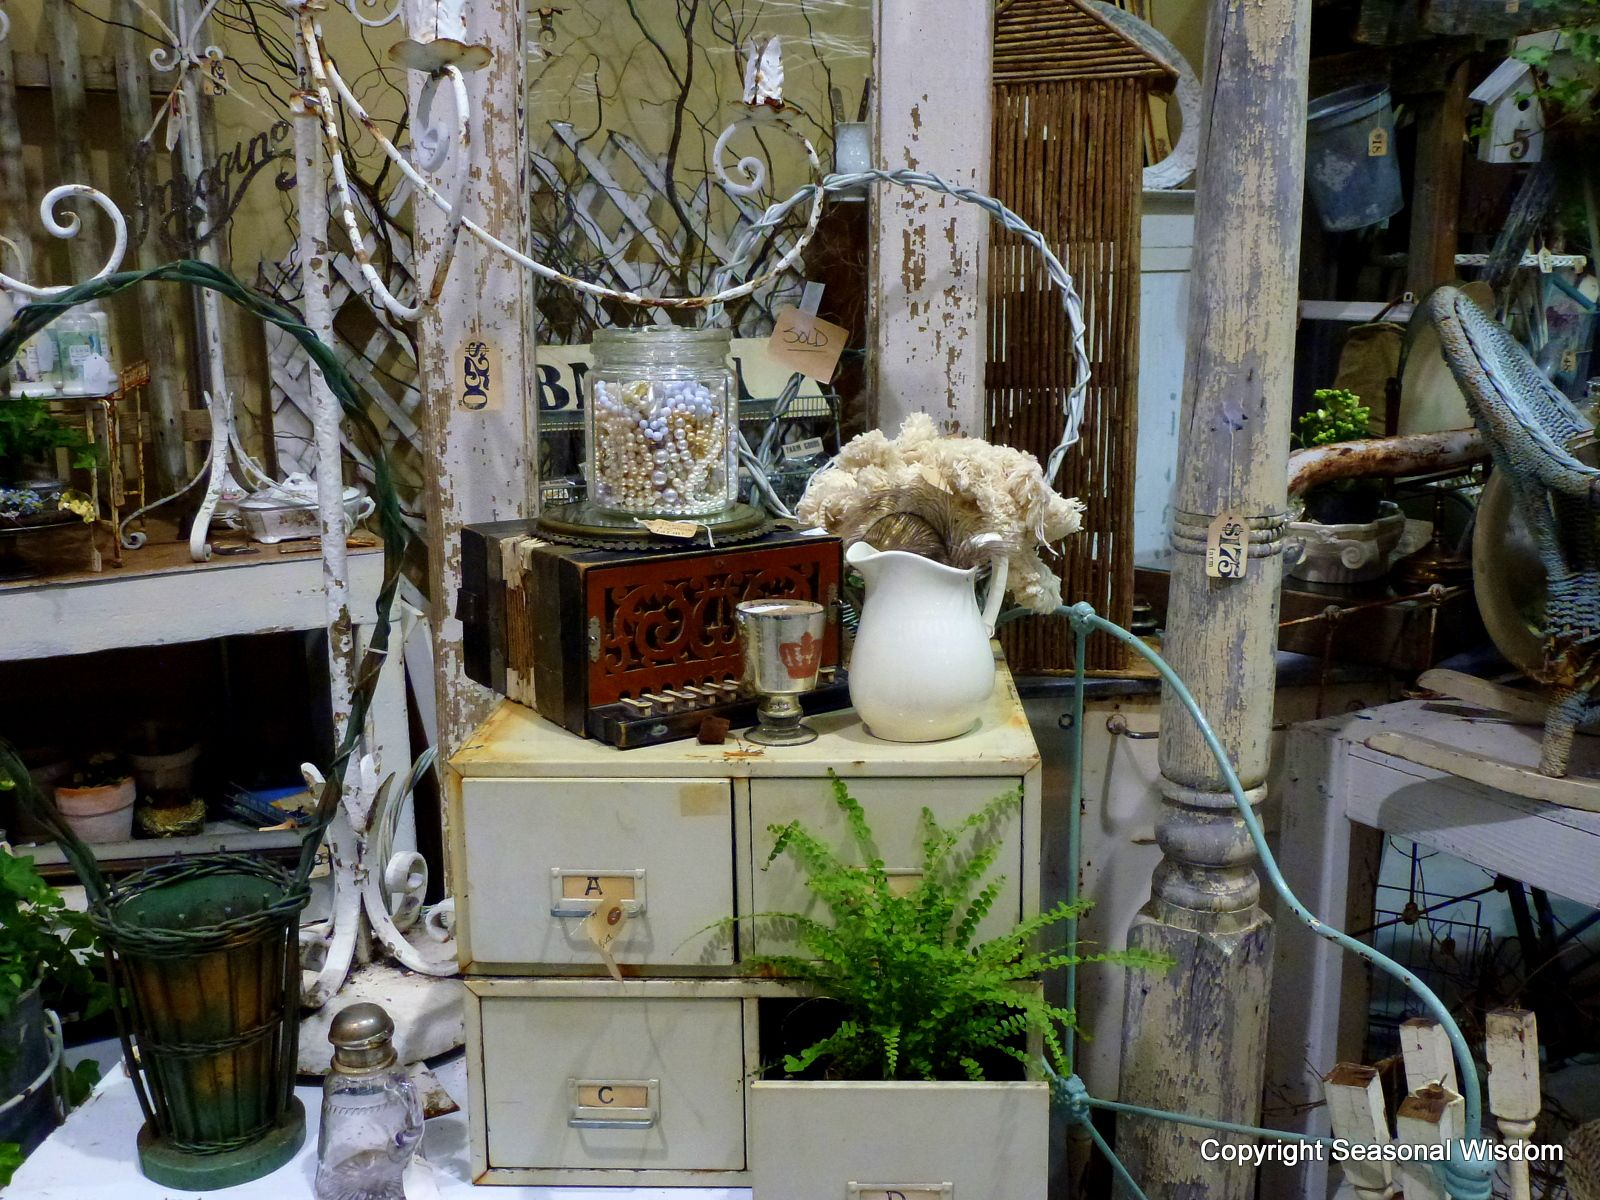 From Old Prints And Antiques To Charming Spring Bulbs, The Vintage Garden  Market At The Northwest Flower U0026 Garden Show Was Packed With Imaginative  Gifts For ...